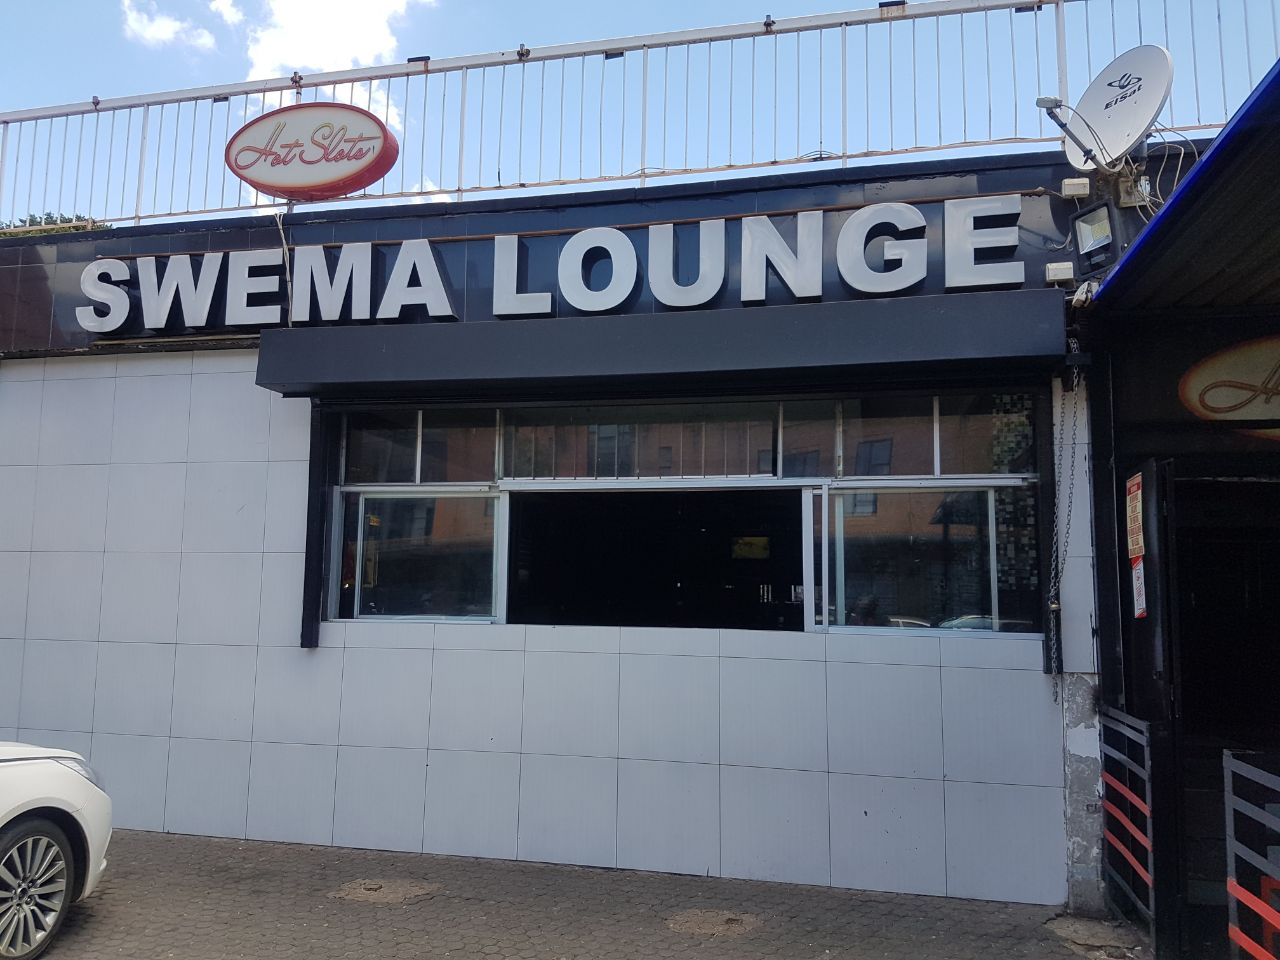 Swema Lounge and de  page lounge for sale